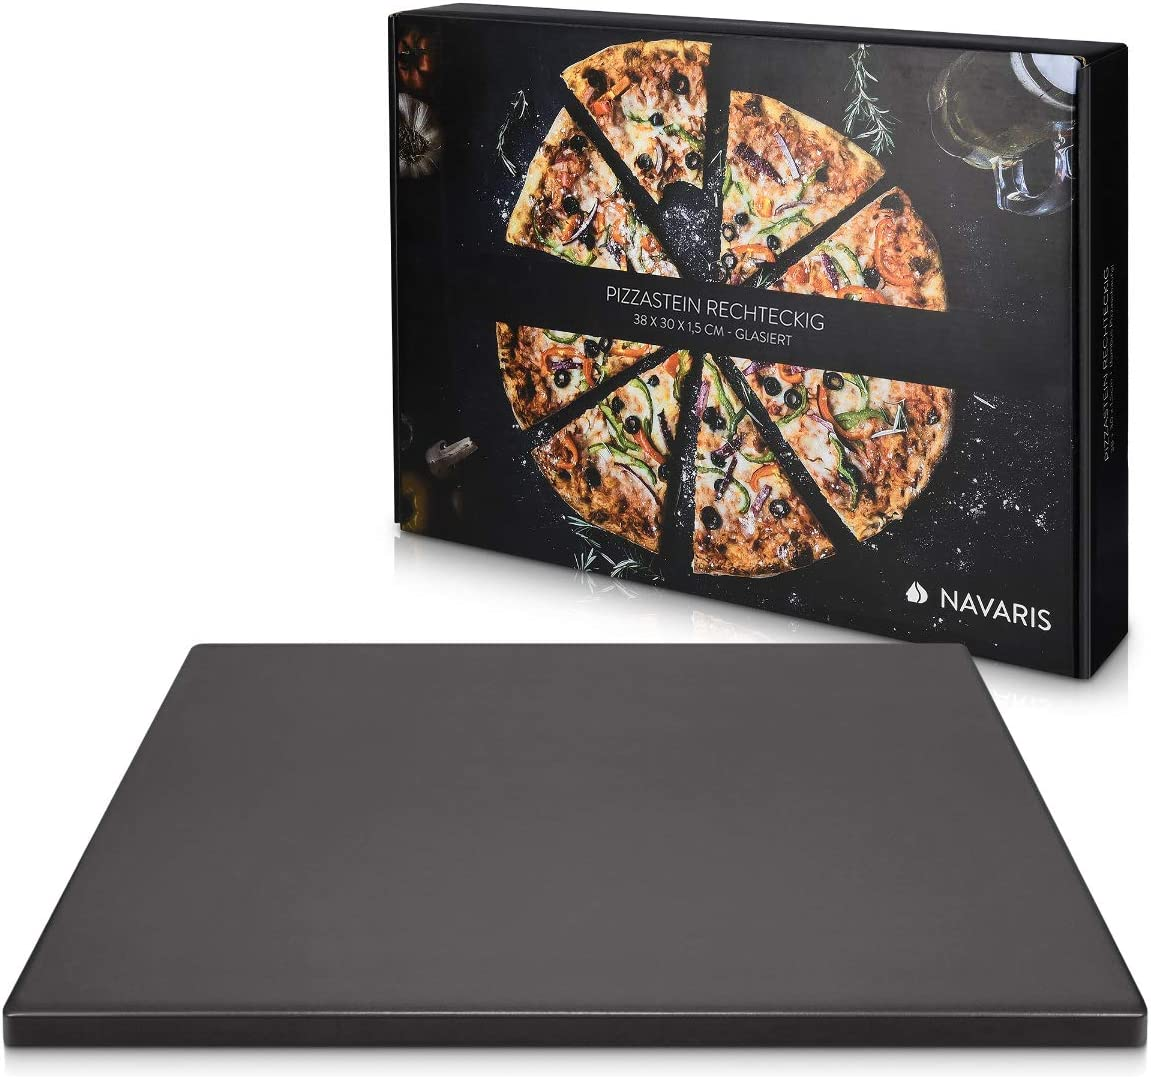 "Navaris XL Pizza Stone for Baking - Glazed Square Cordierite Stone Plate for BBQ Grill Oven - Cook, Serve Pizza Bread Cheese - 15"" x 11.8"" x 0.6"""